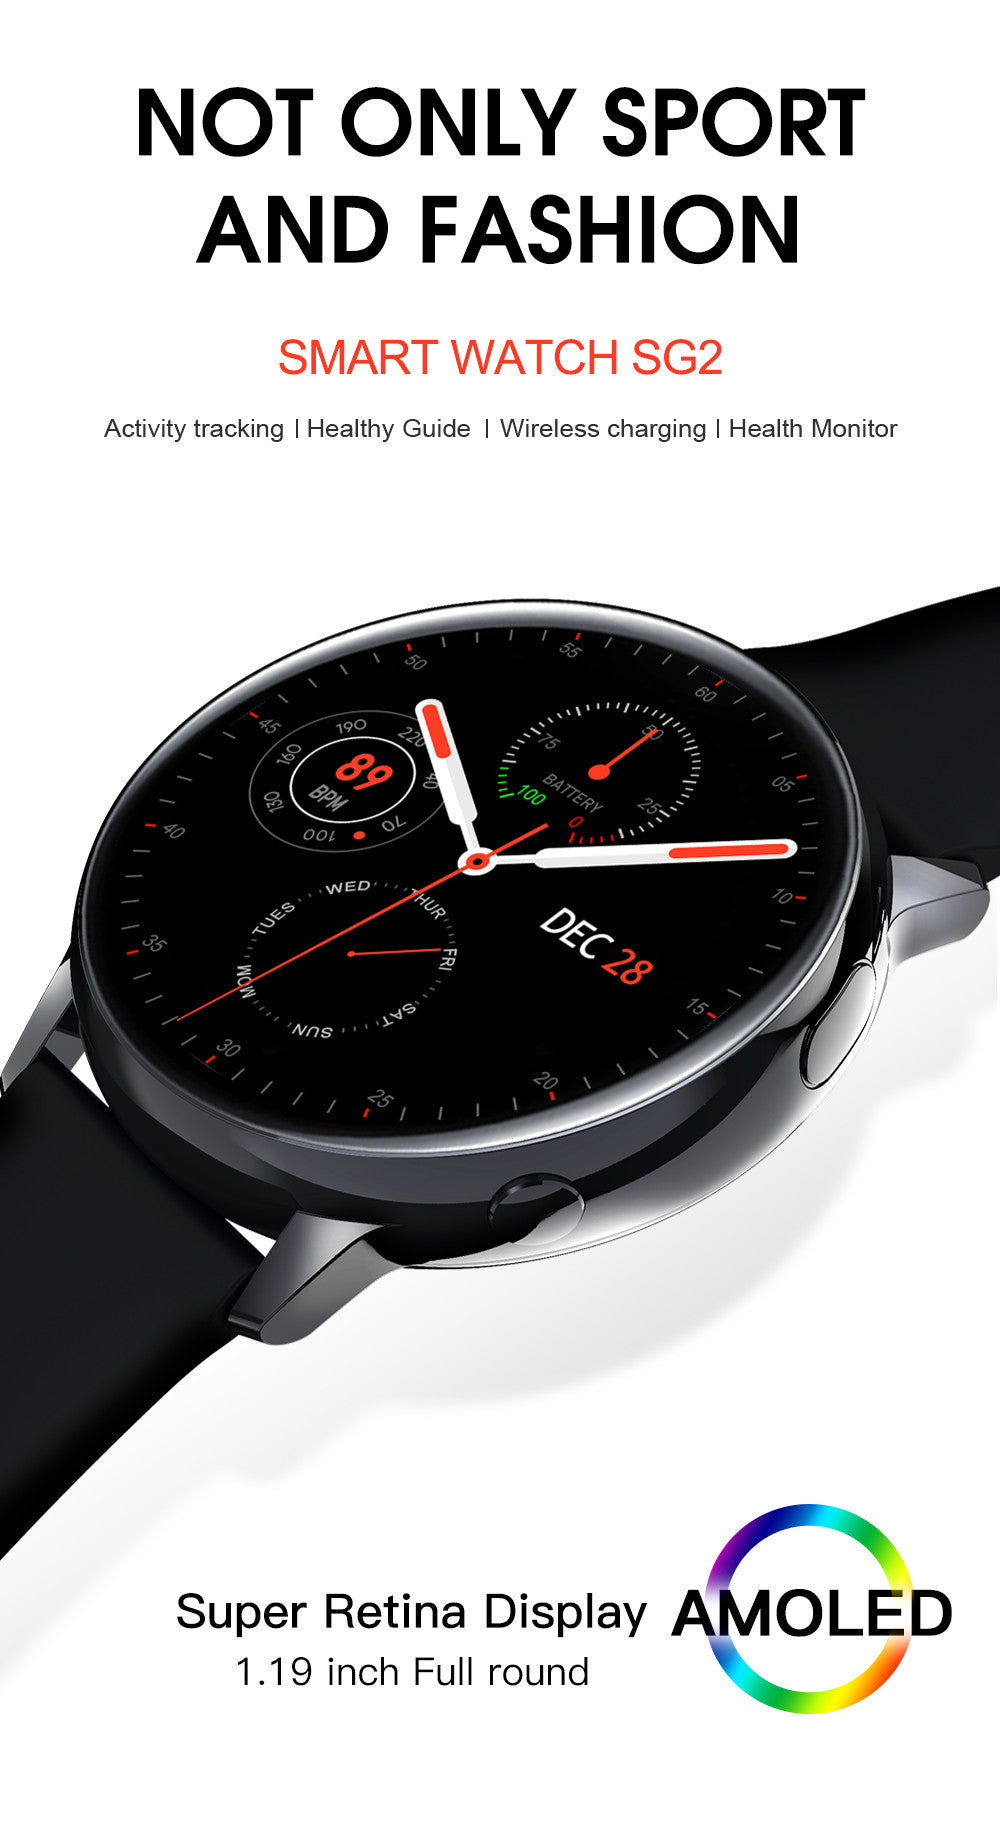 SG2 Smart Watch-detailed information